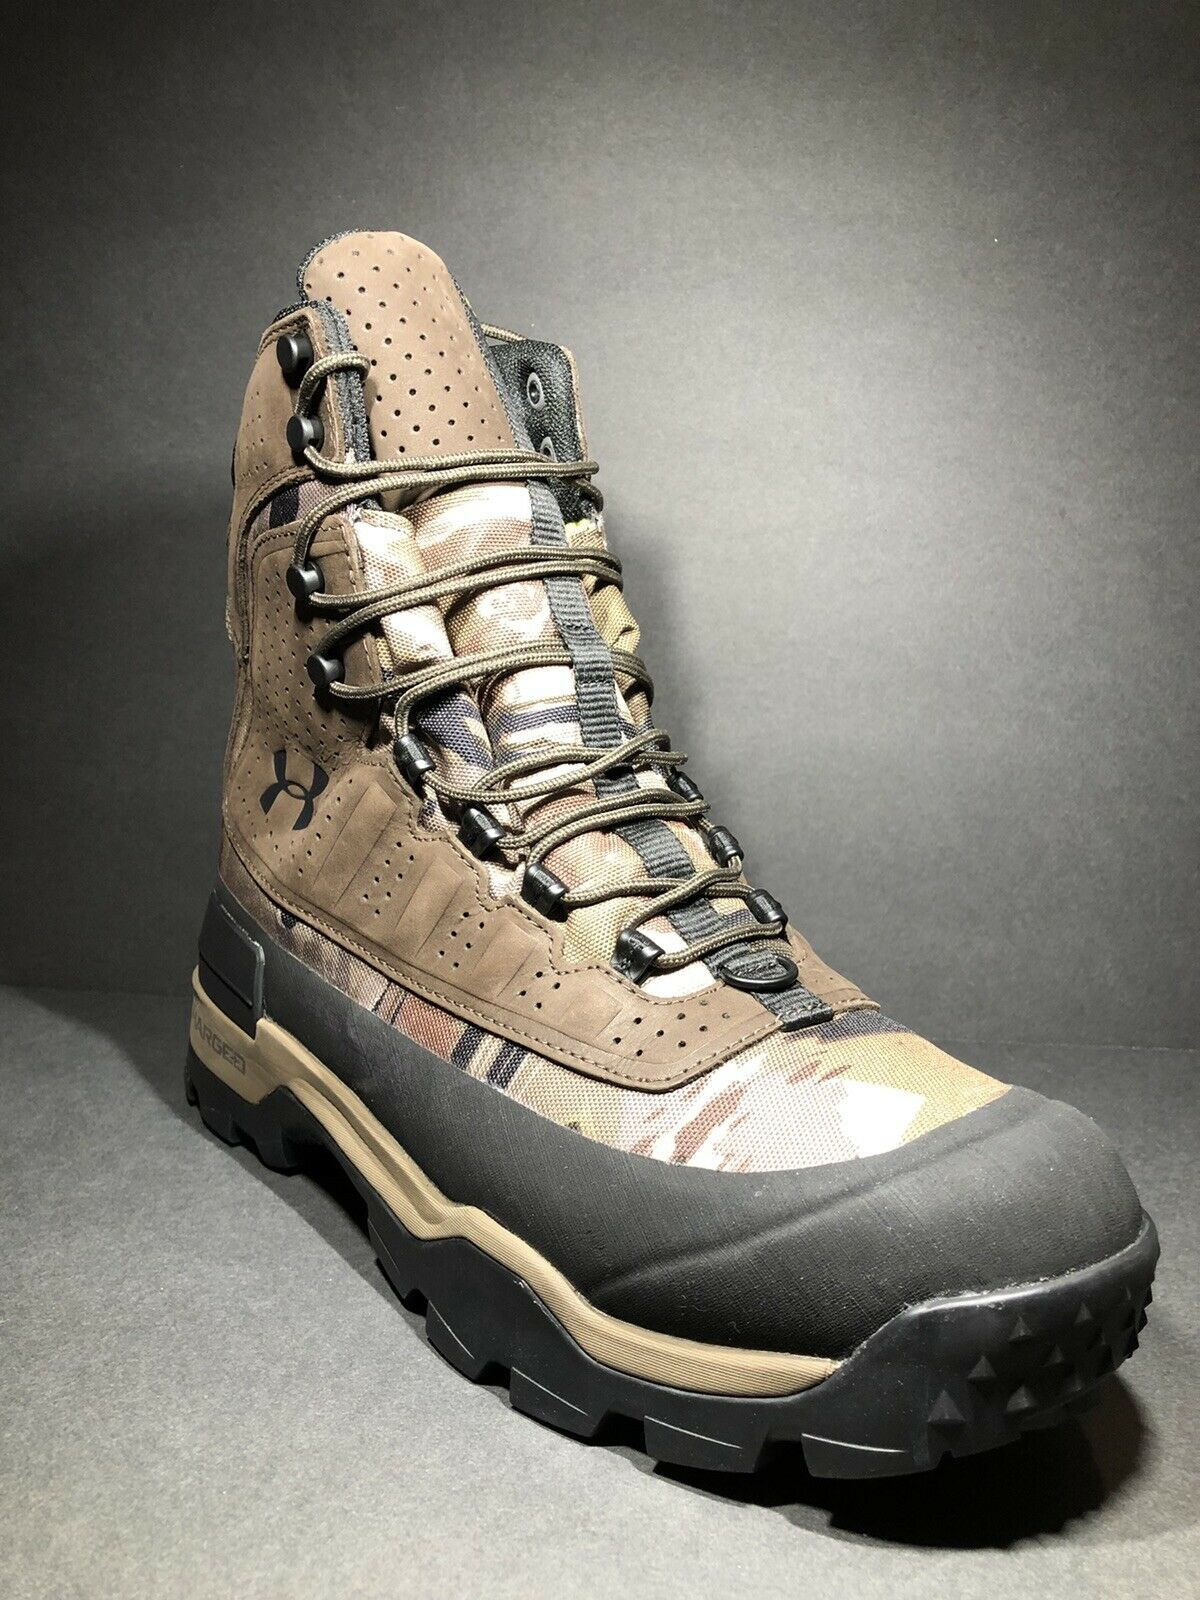 Under Armour Burnt River Mid 2.0 Hiking Boots Shoes SMS Sample Men/'s size 9